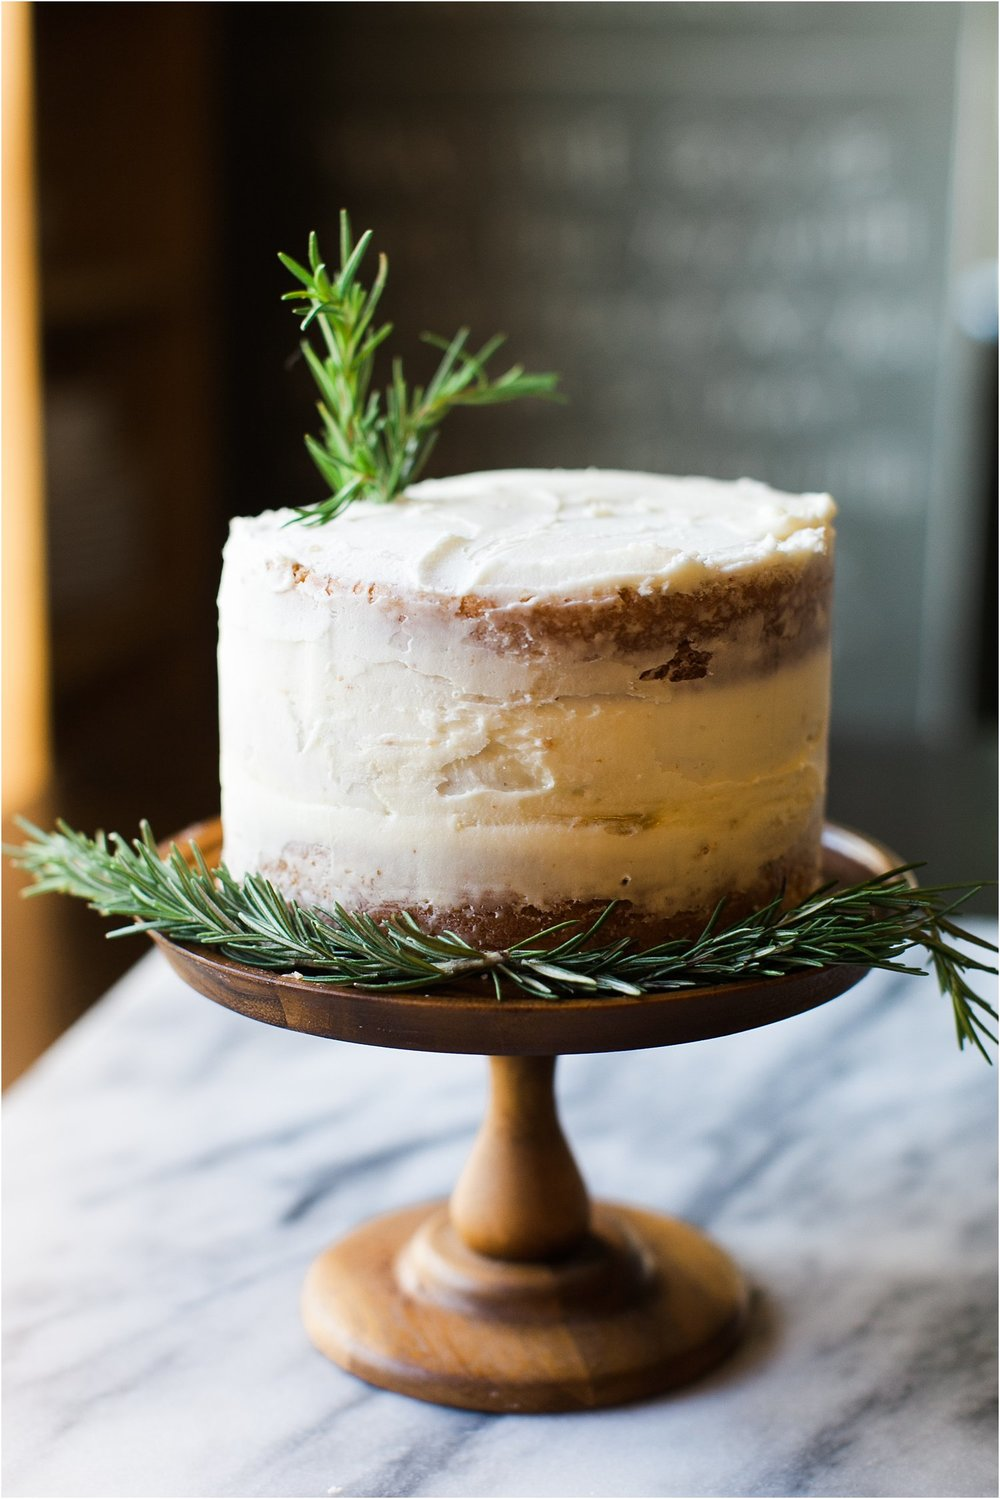 Lemon Curd Cake with Rosemary Buttercream | Feast & Dwell